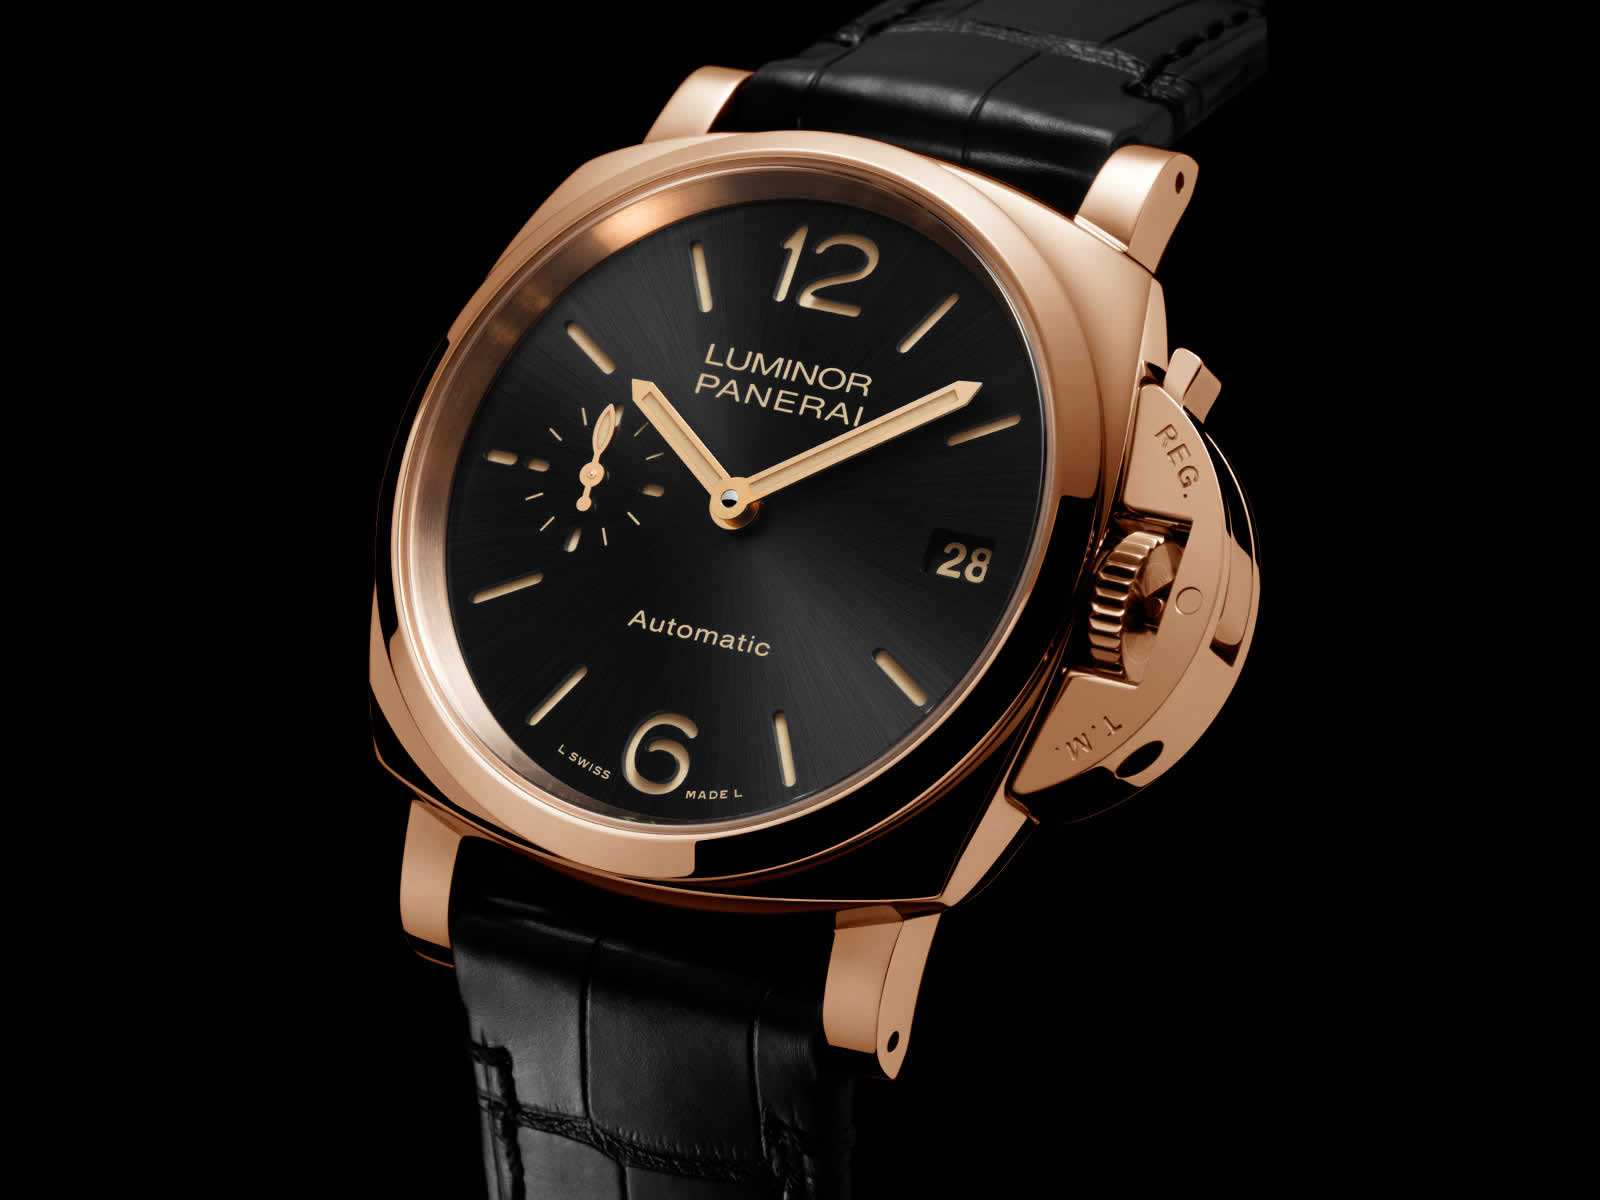 Panerai-Luminor-Due-3-Days-Automatic-Oro-Rosso-Pam00908-Sihh2018-2.jpg